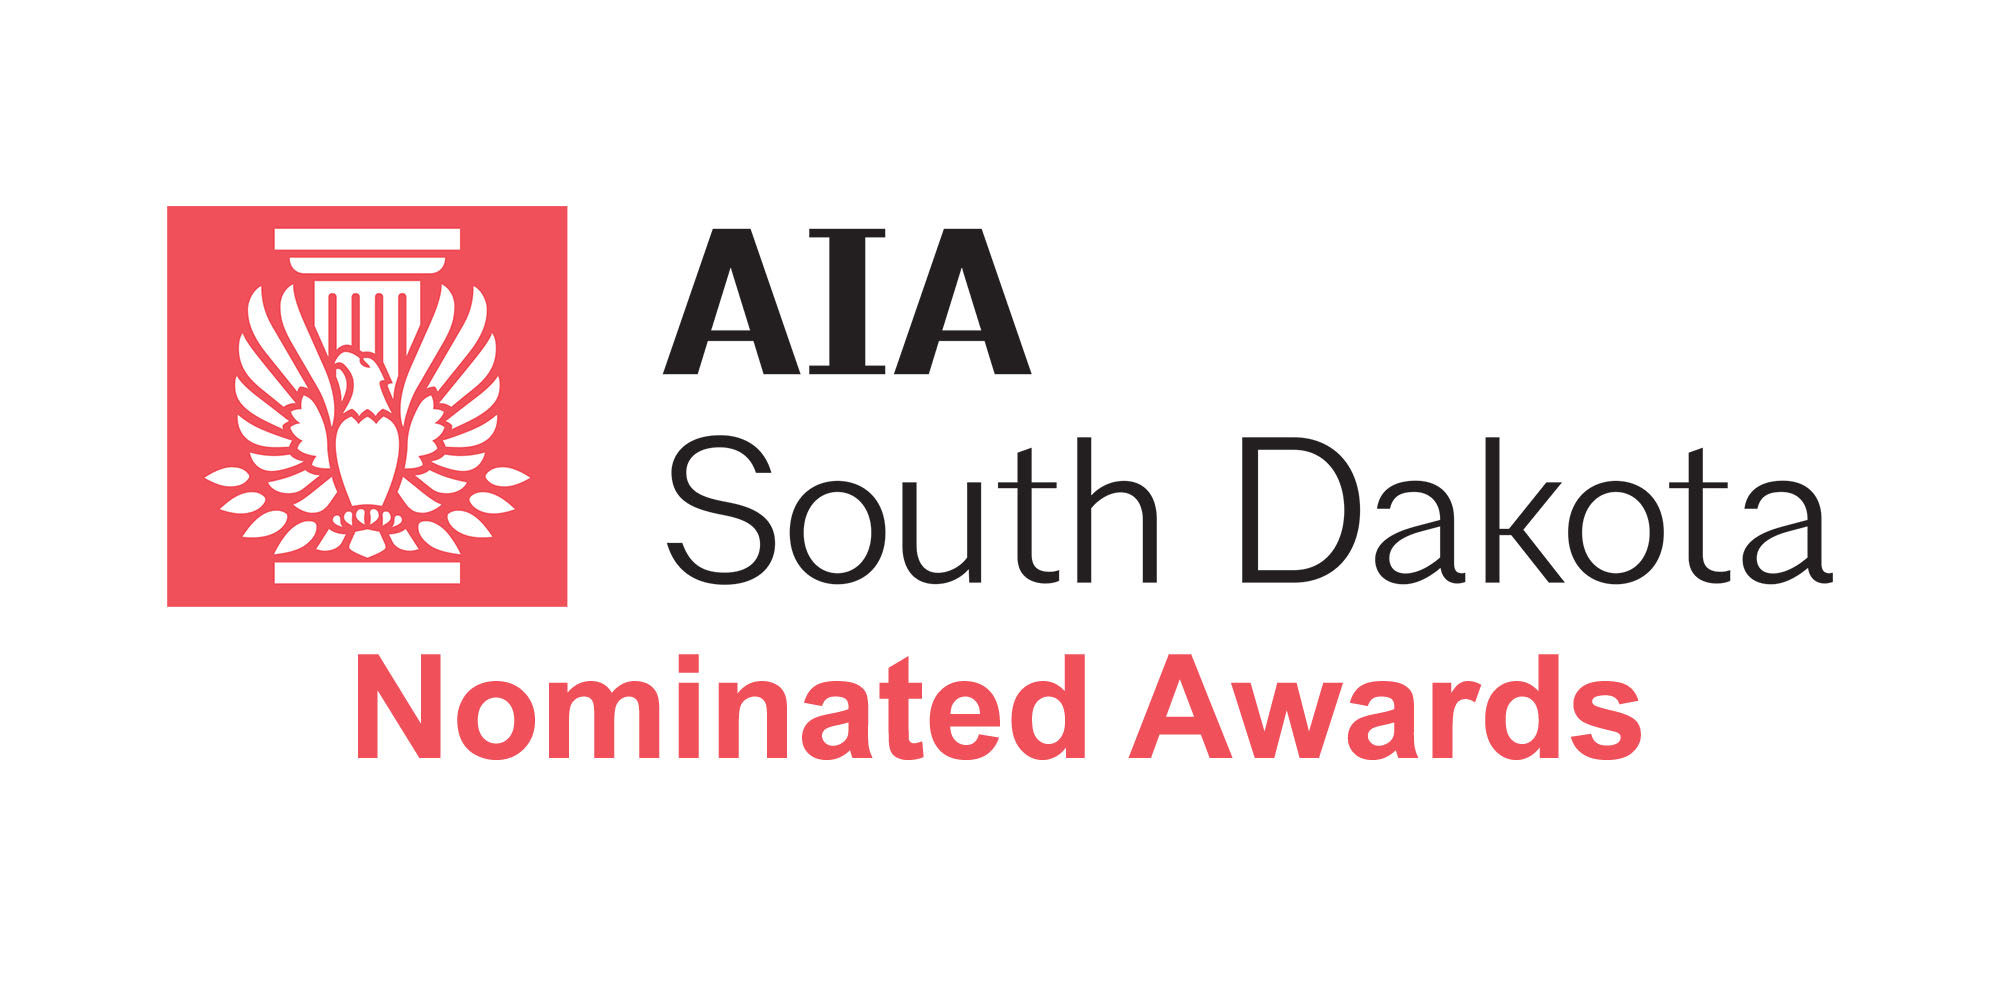 AIA SD Nominated Awards